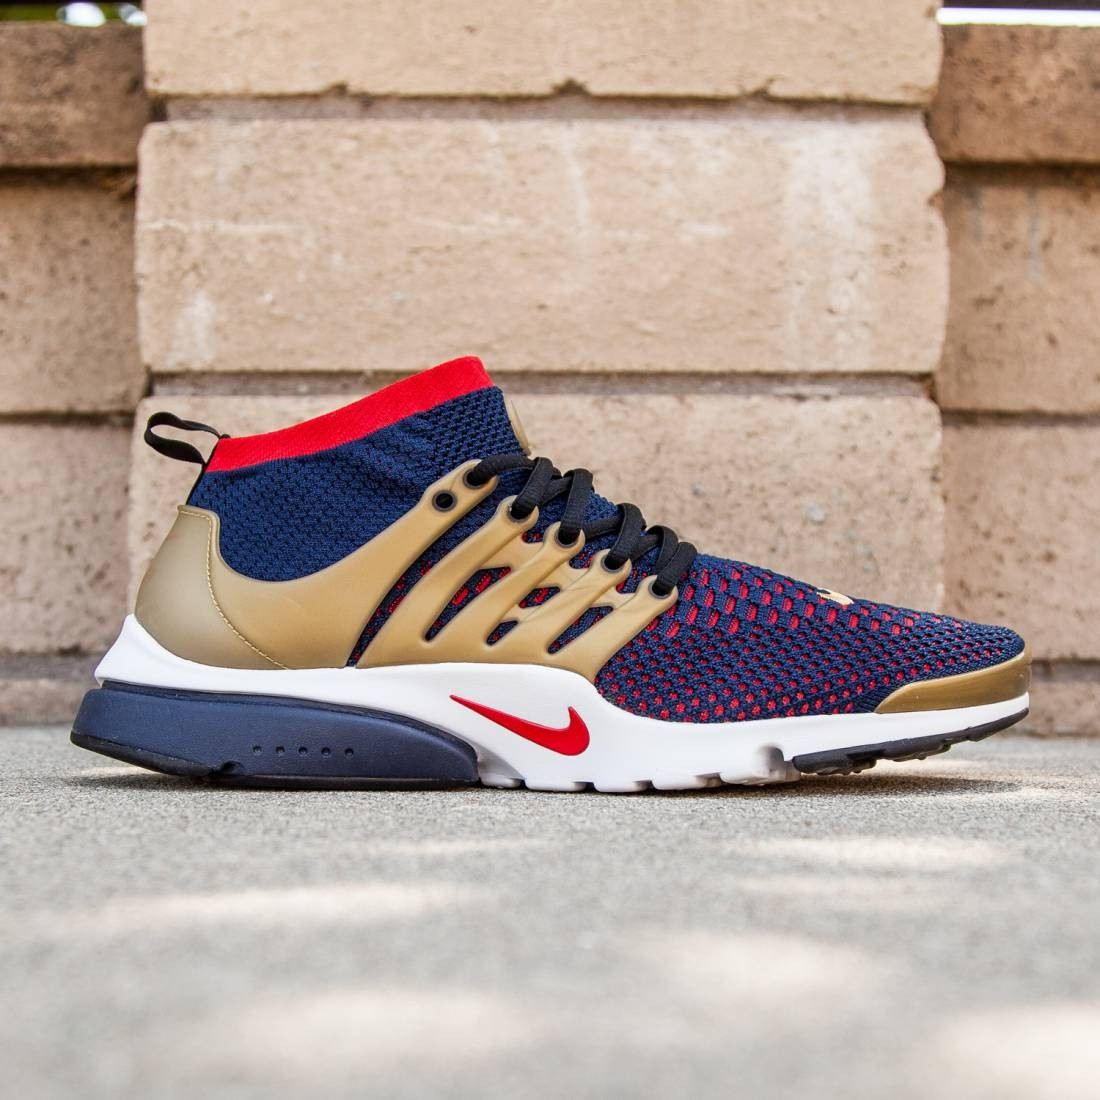 newest 0ee81 f74ab Nike Men Nike Air Presto Ultra Flyknit Shoe (college navy   comet  red-metallic gold)